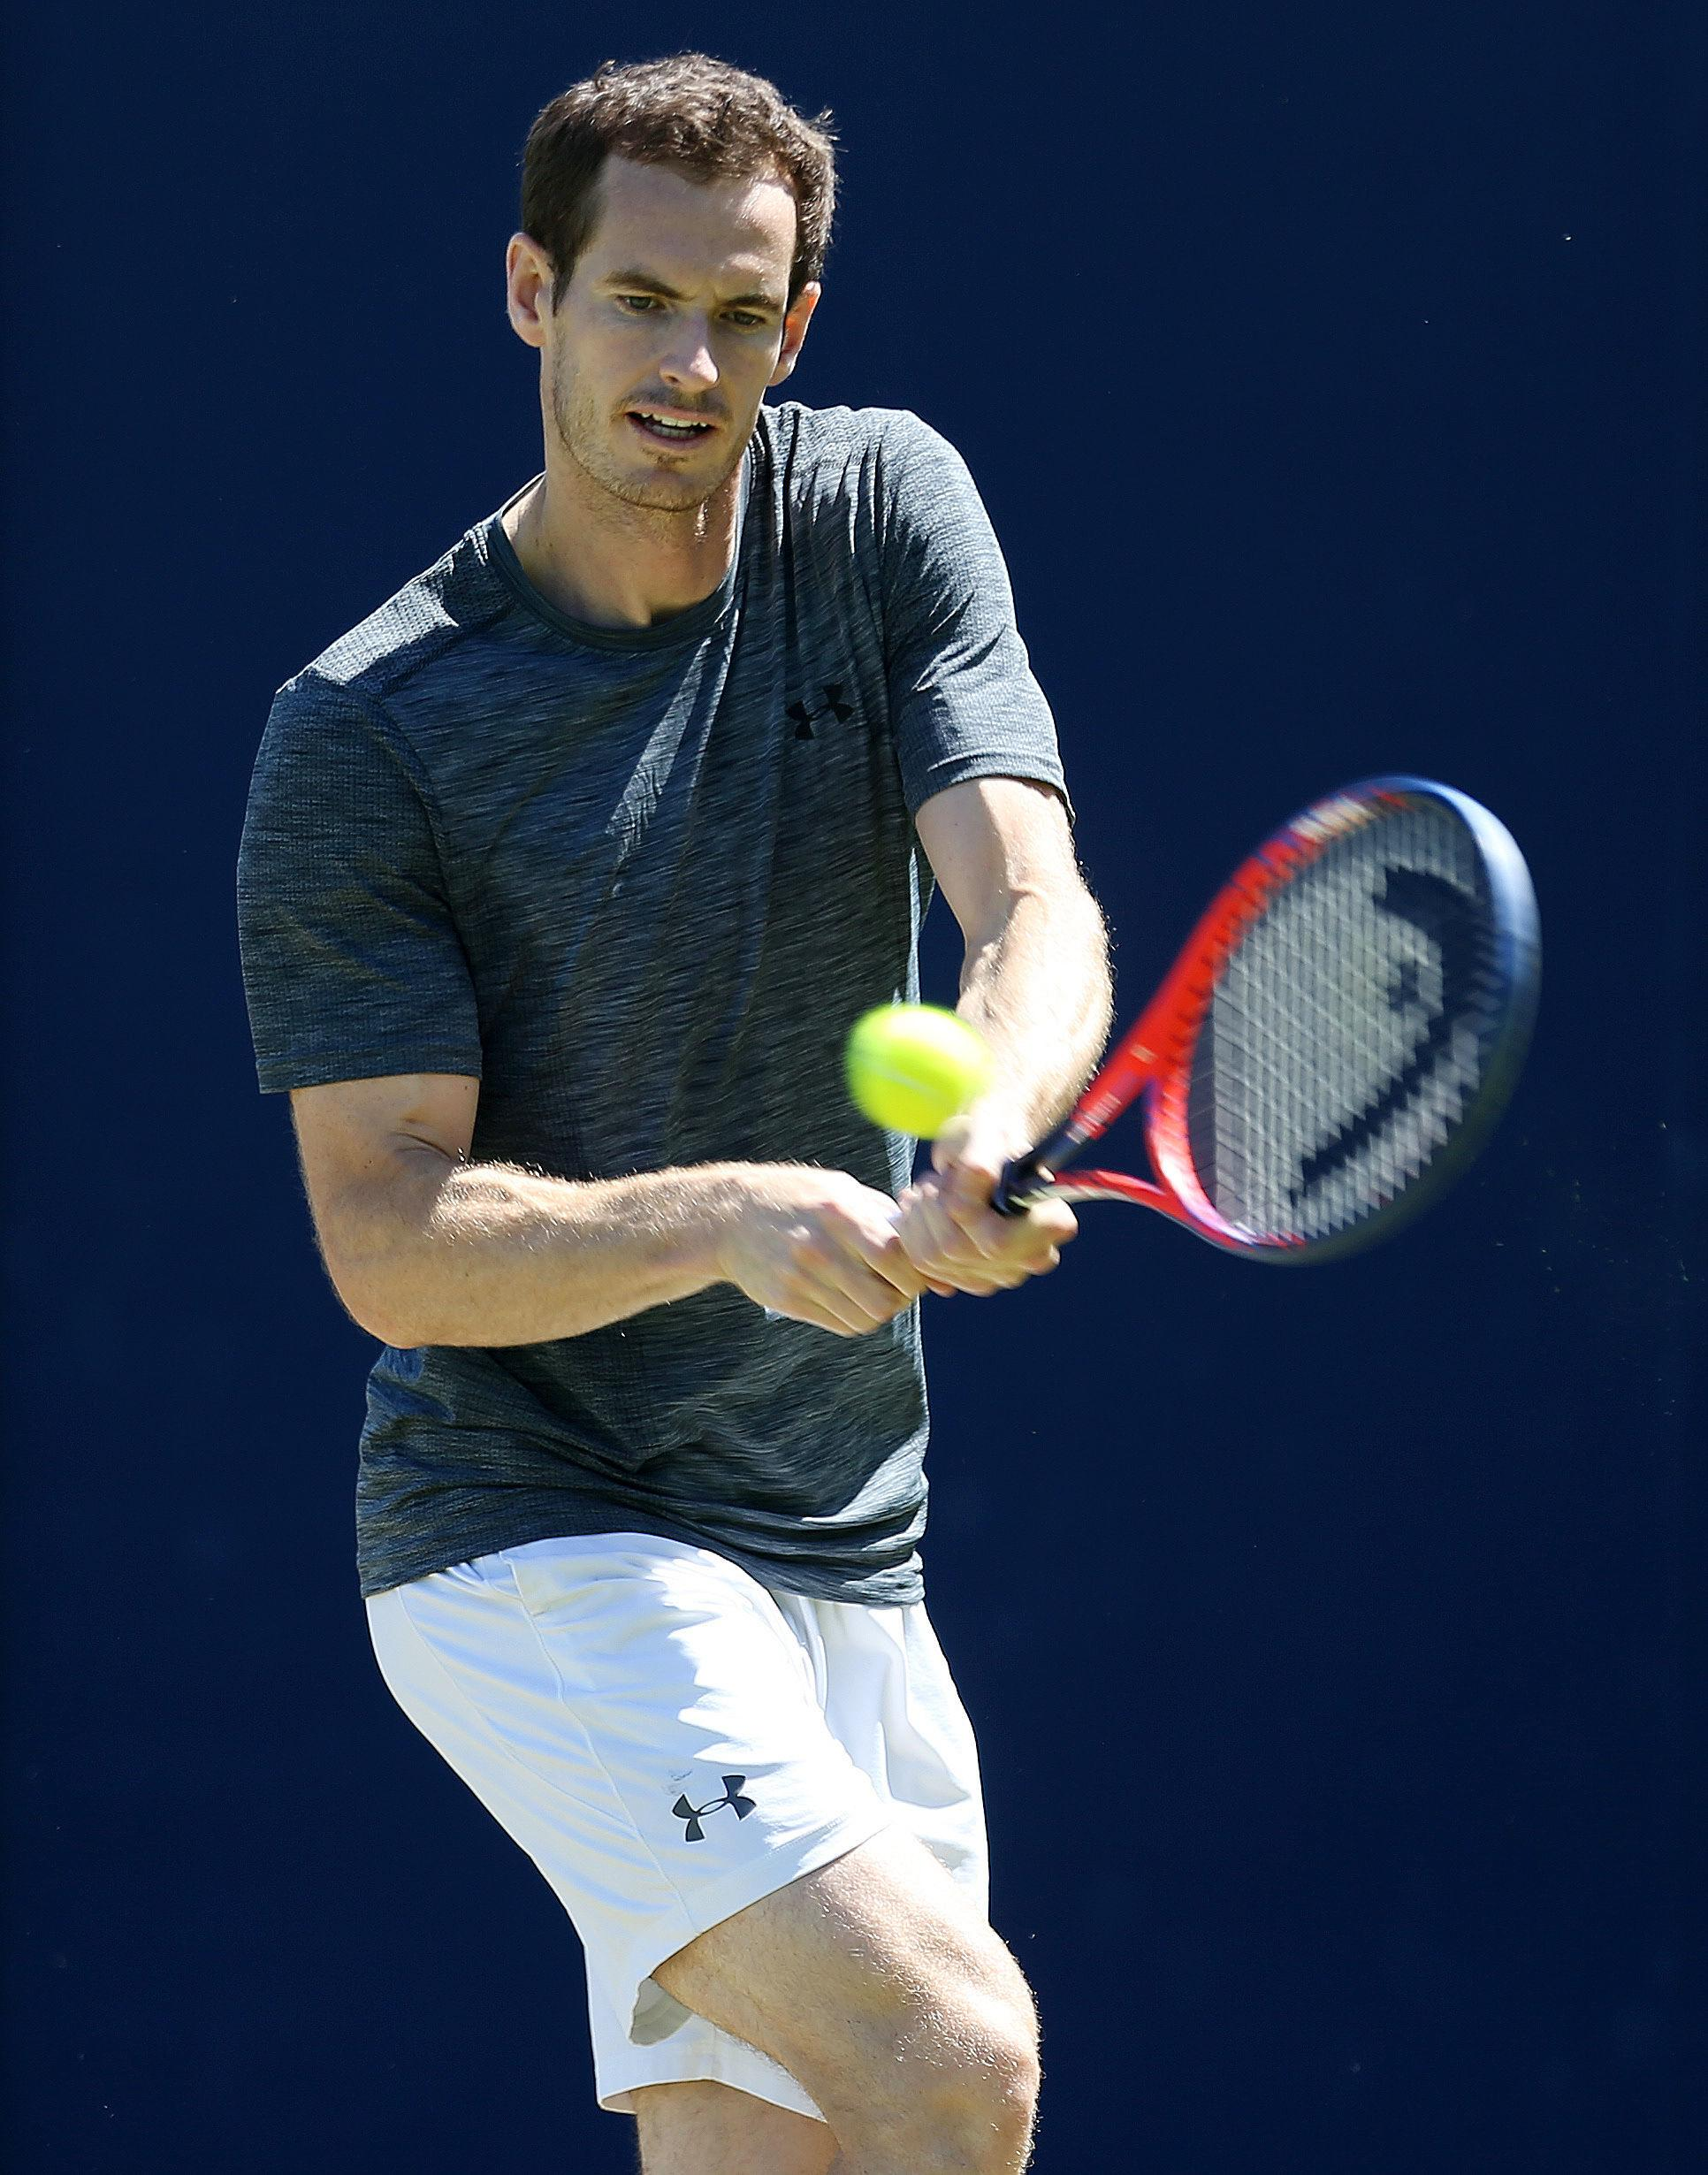 Andy Murray was warming-up his ground strokes ahead of the grass-court season